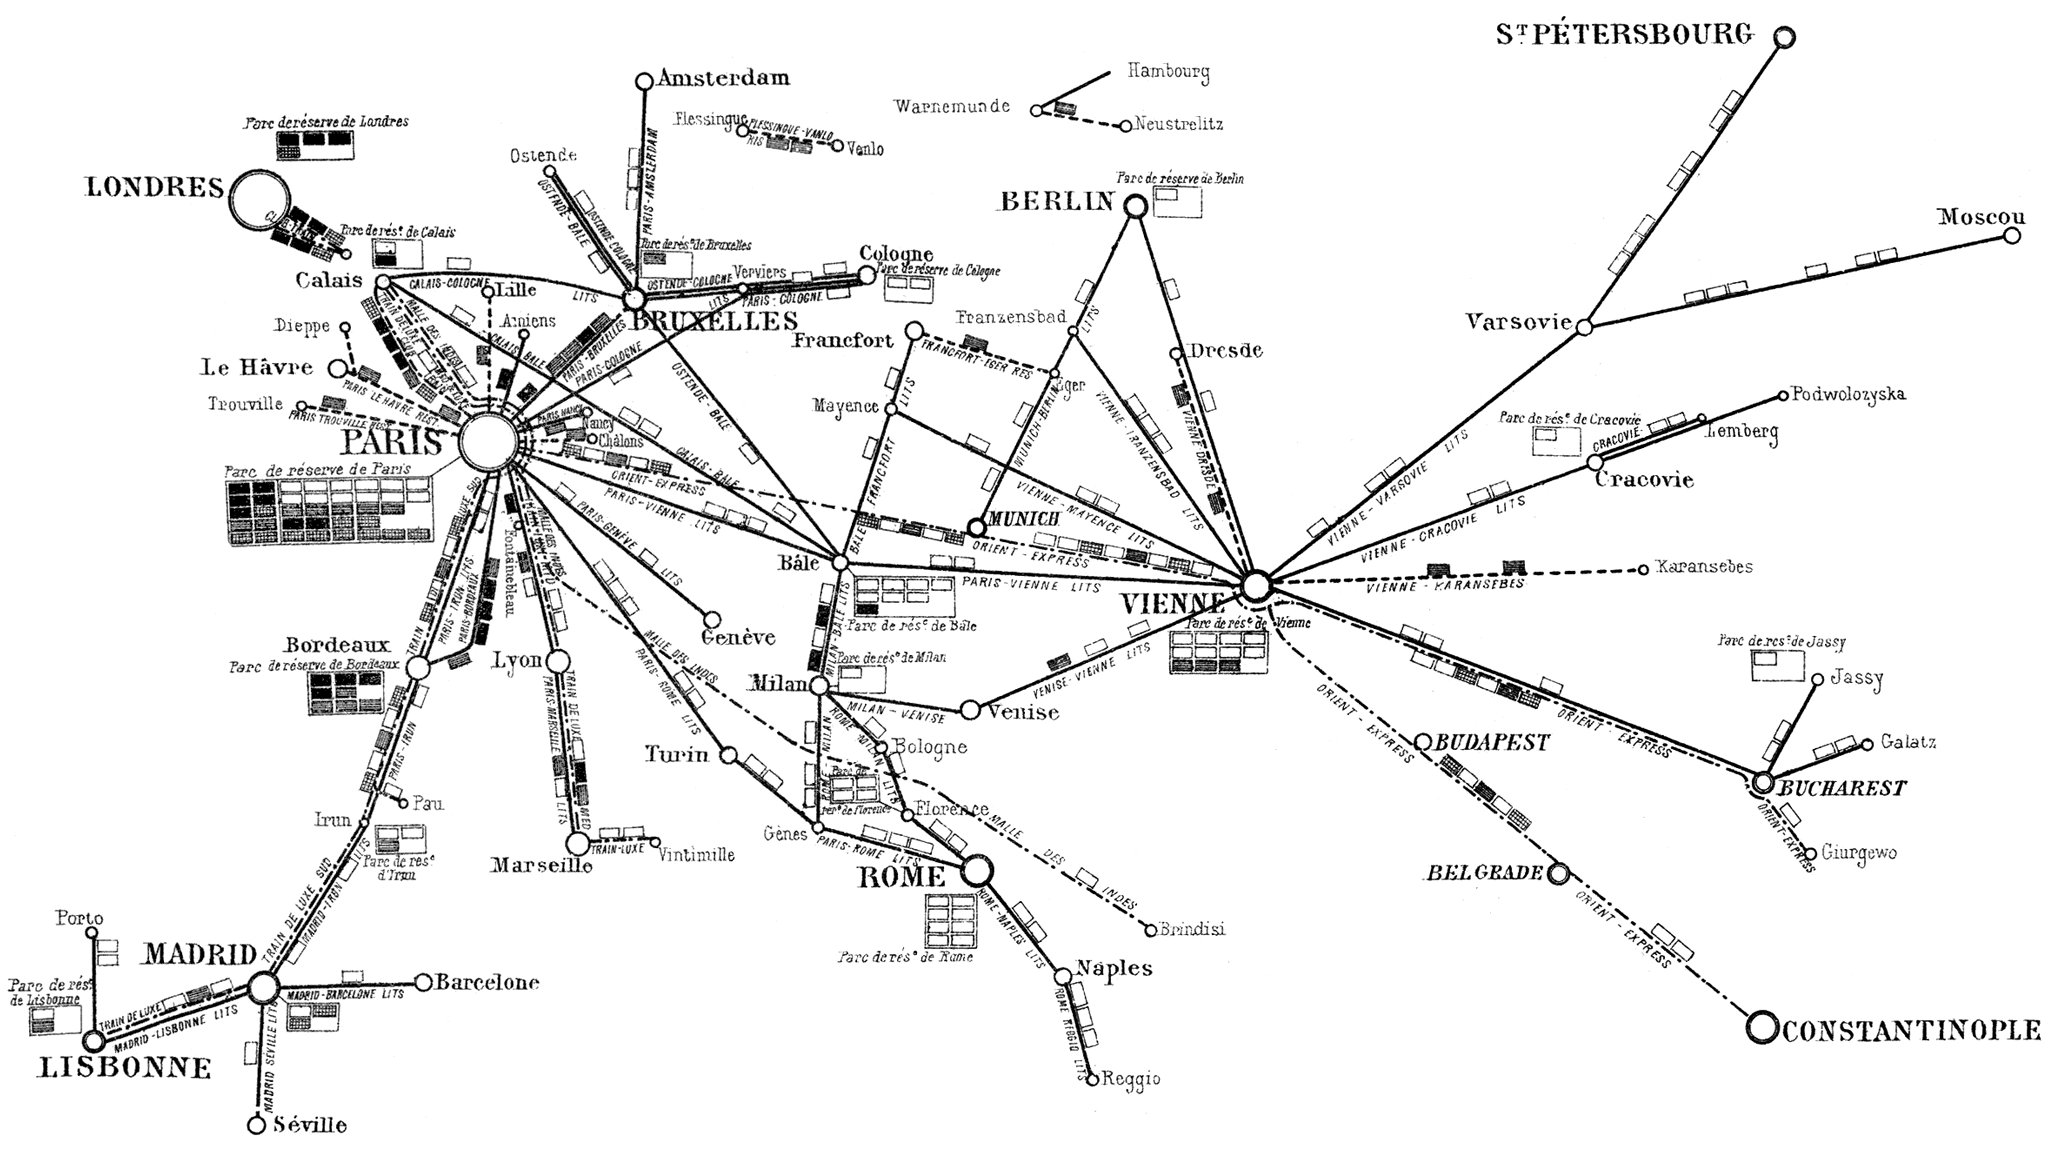 Along Straight Lines Schematic Railway Maps Retours - Colo river map